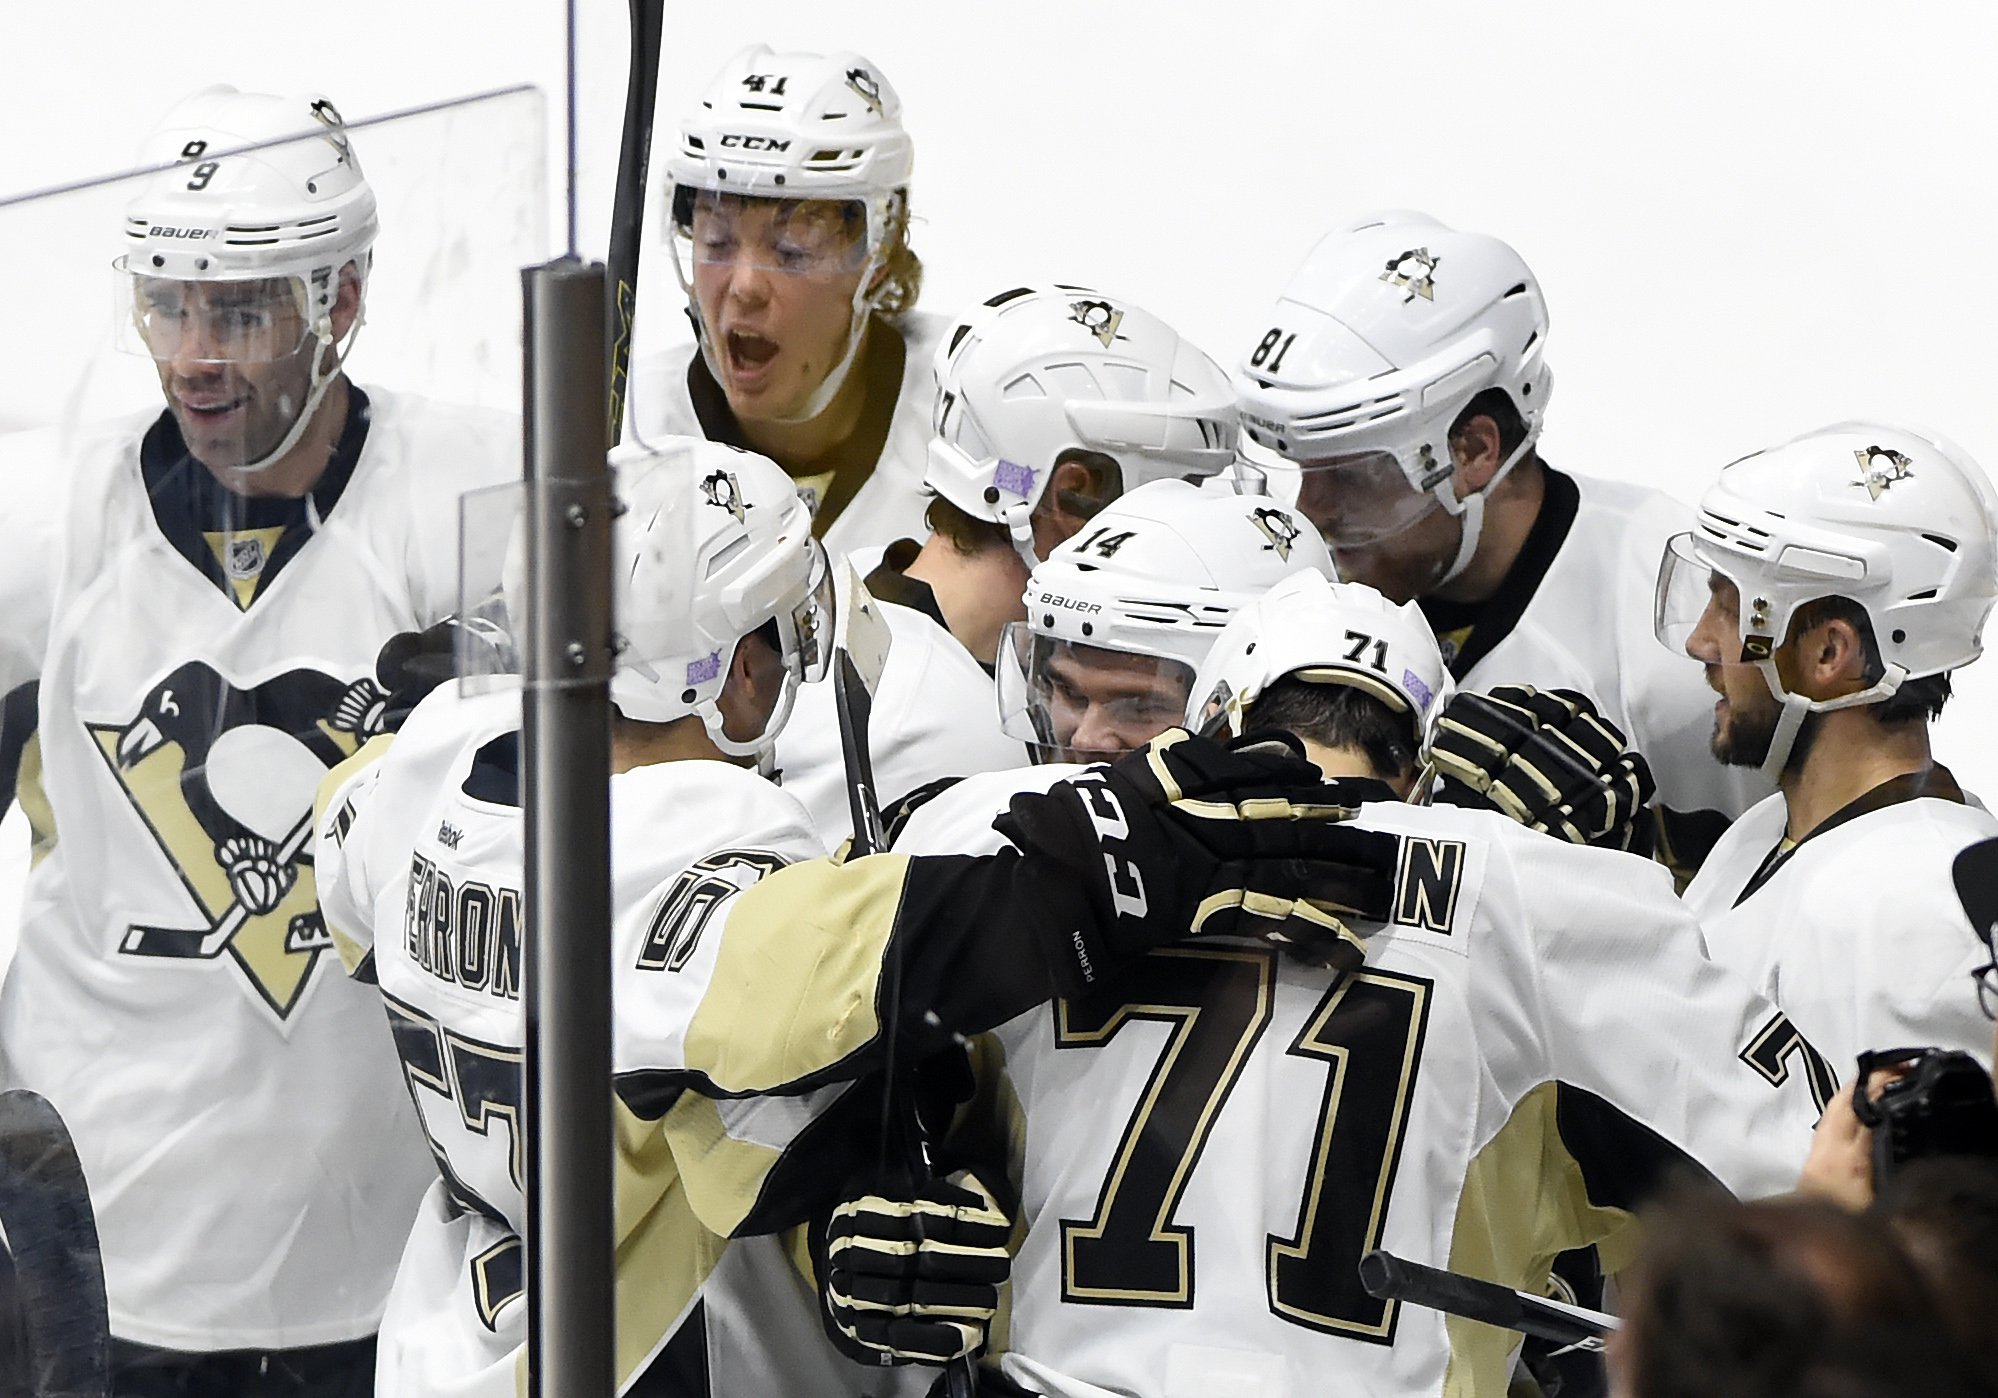 Pittsburgh Penguins right wing Phil Kessel (81) celebrates with teammates after scoring a goal in overtime of an NHL hockey game against the Nashville Predators, Saturday, Oct. 24, 2015, in Nashville, Tenn. The Penguins won 2-1. (AP Photo/Mark Zaleski)